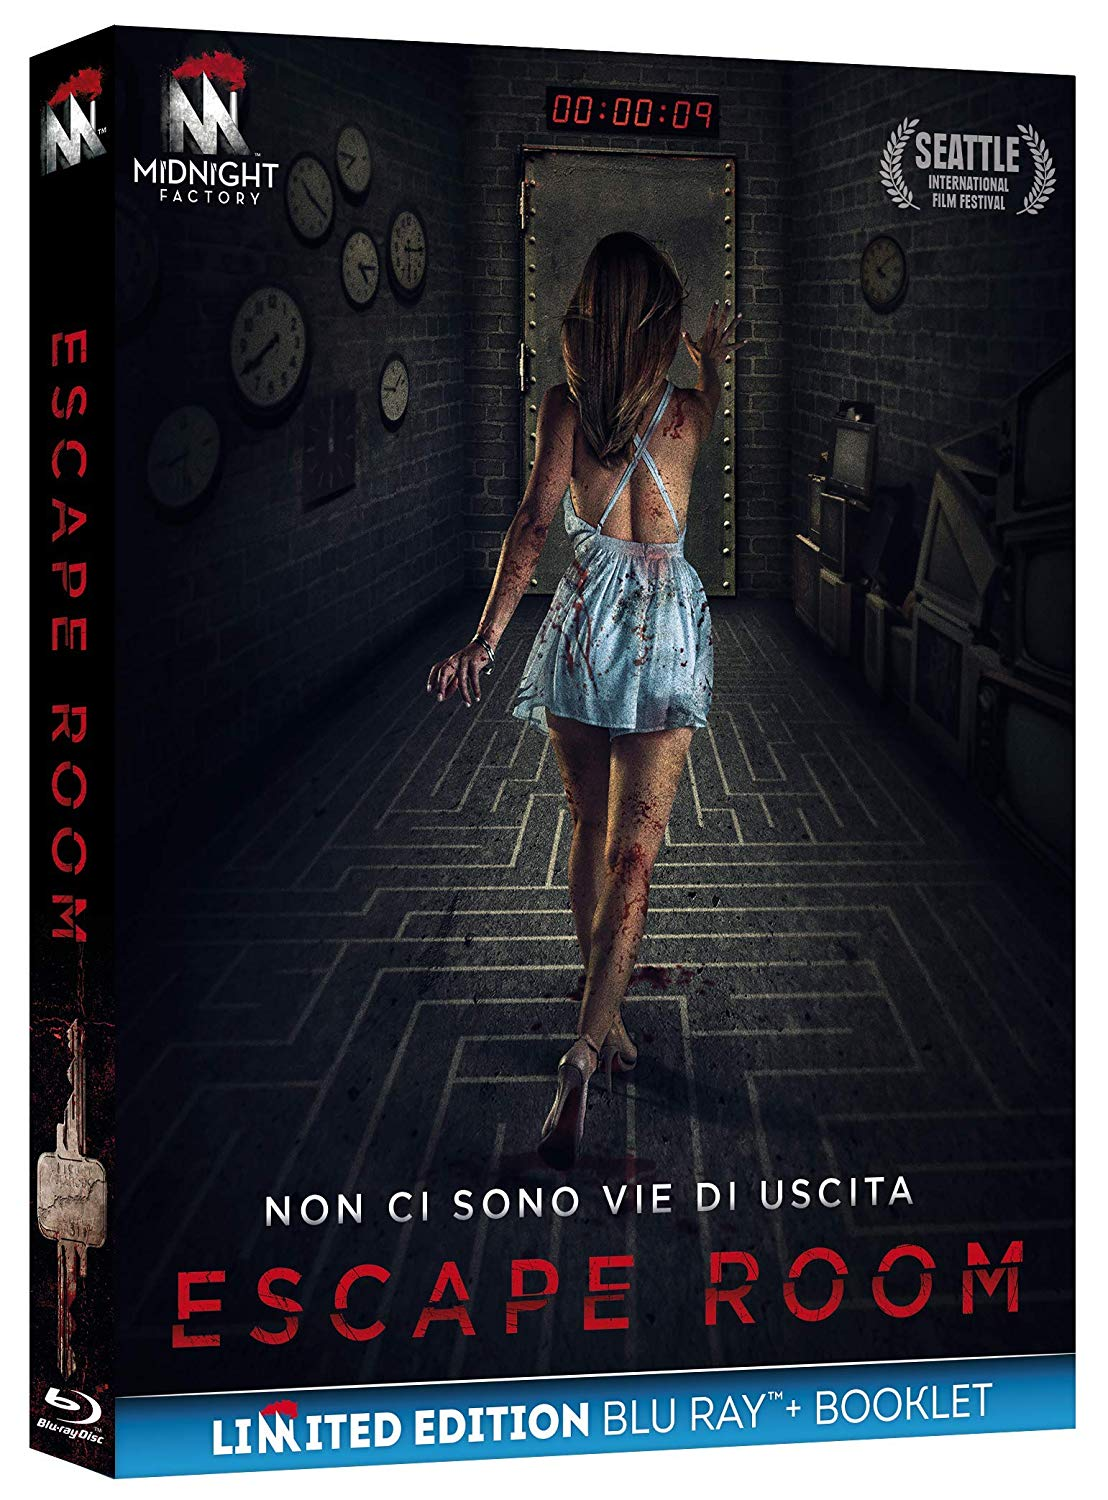 ESCAPE ROOM (EDIZIONE LIMITATA+BOOKLET) - BLU RAY